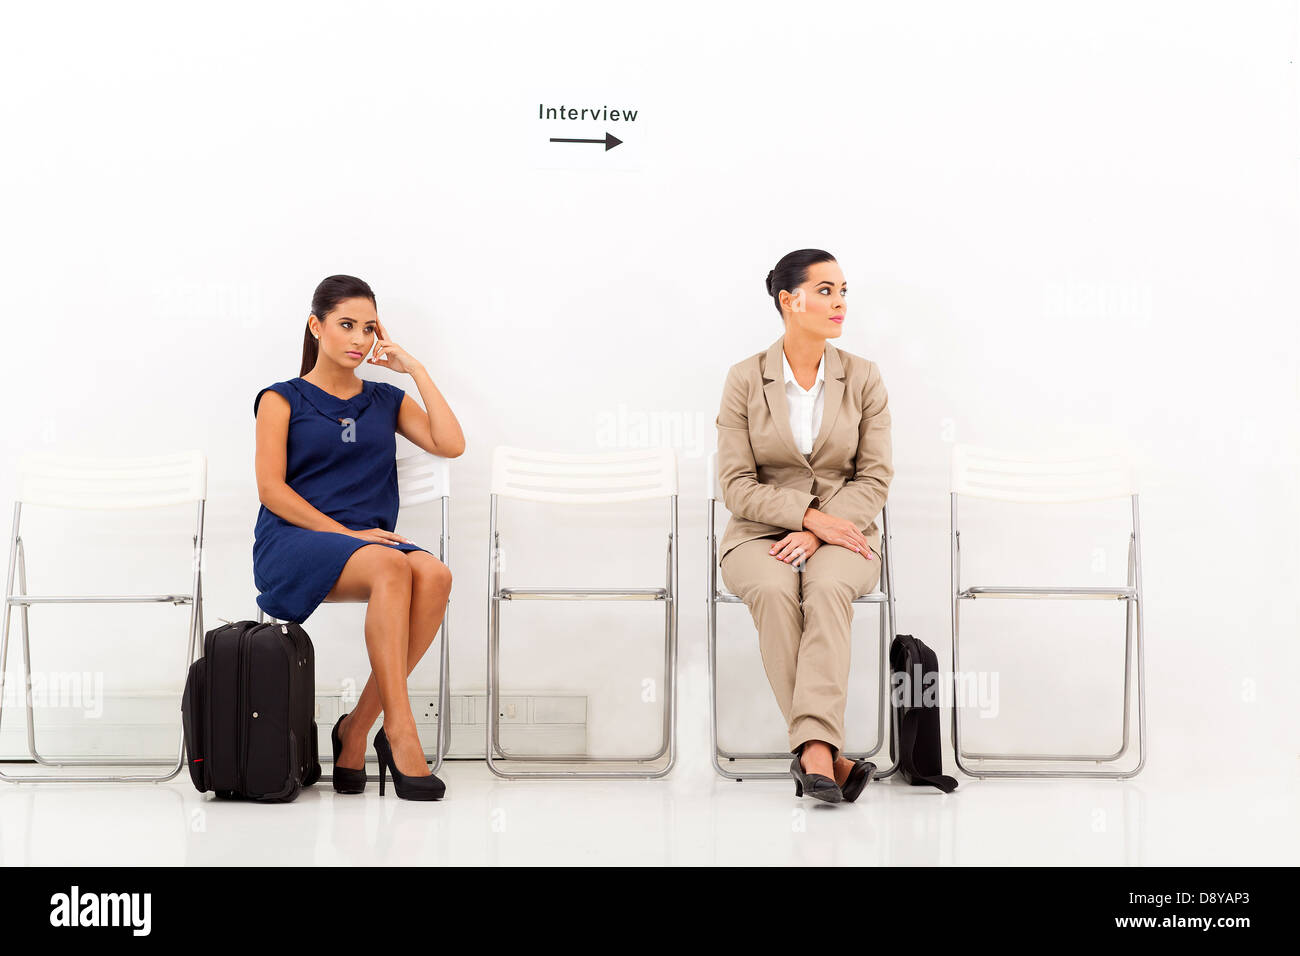 two beautiful female candidates waiting for job interview - Stock Image